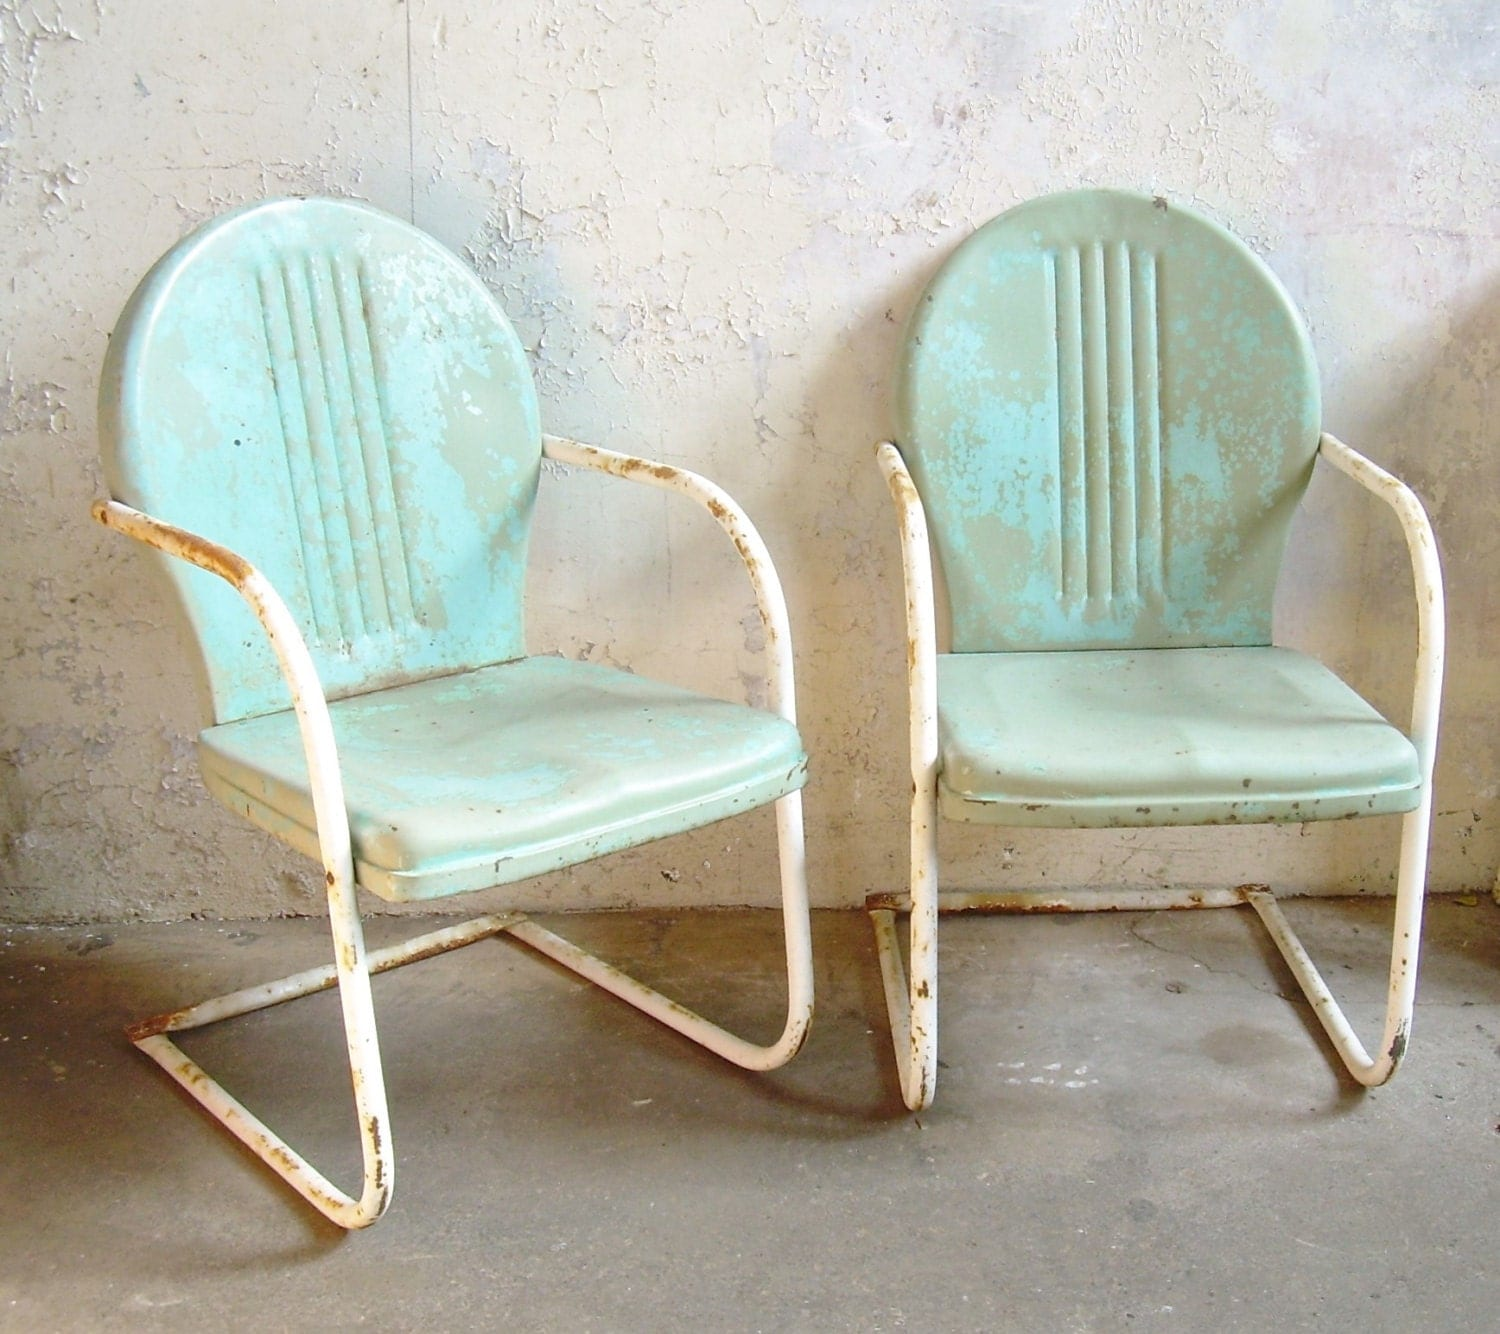 Retro Lawn Chairs Retro Metal Lawn Chairs Pair Rustic Vintage Porch Furniture